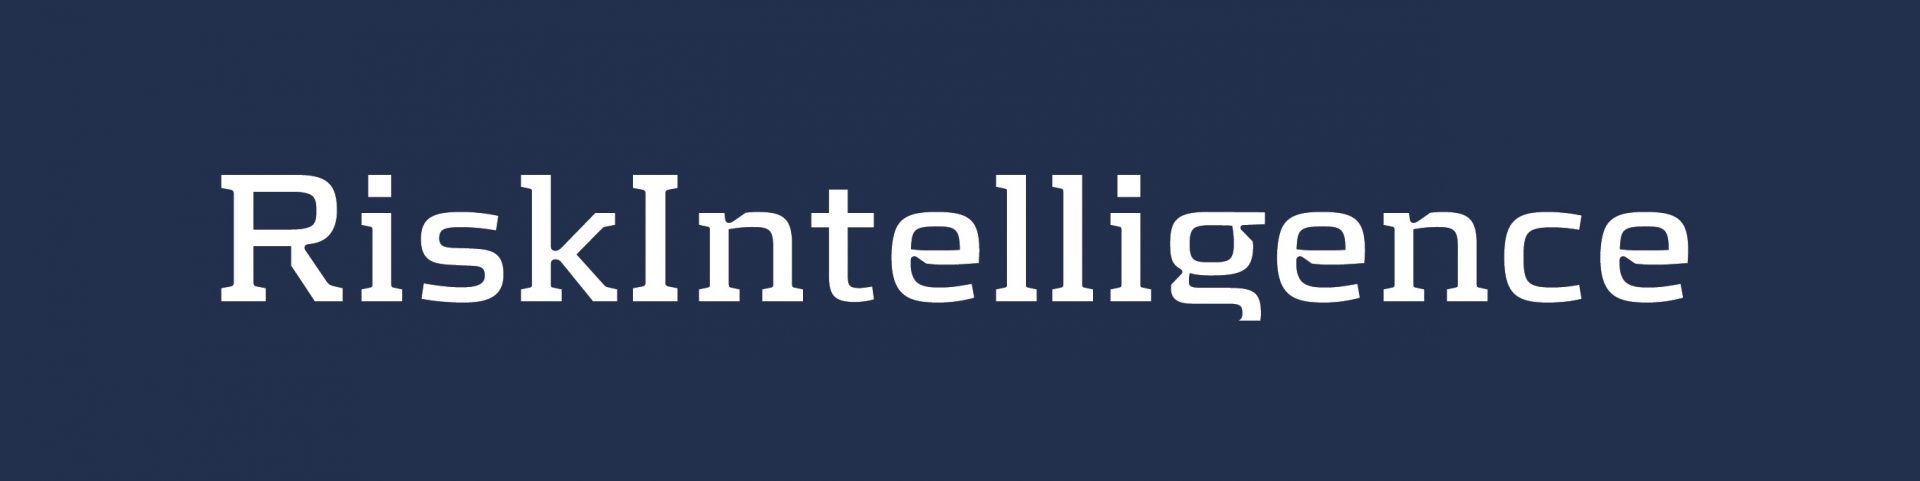 risk-intelligence-logo-square